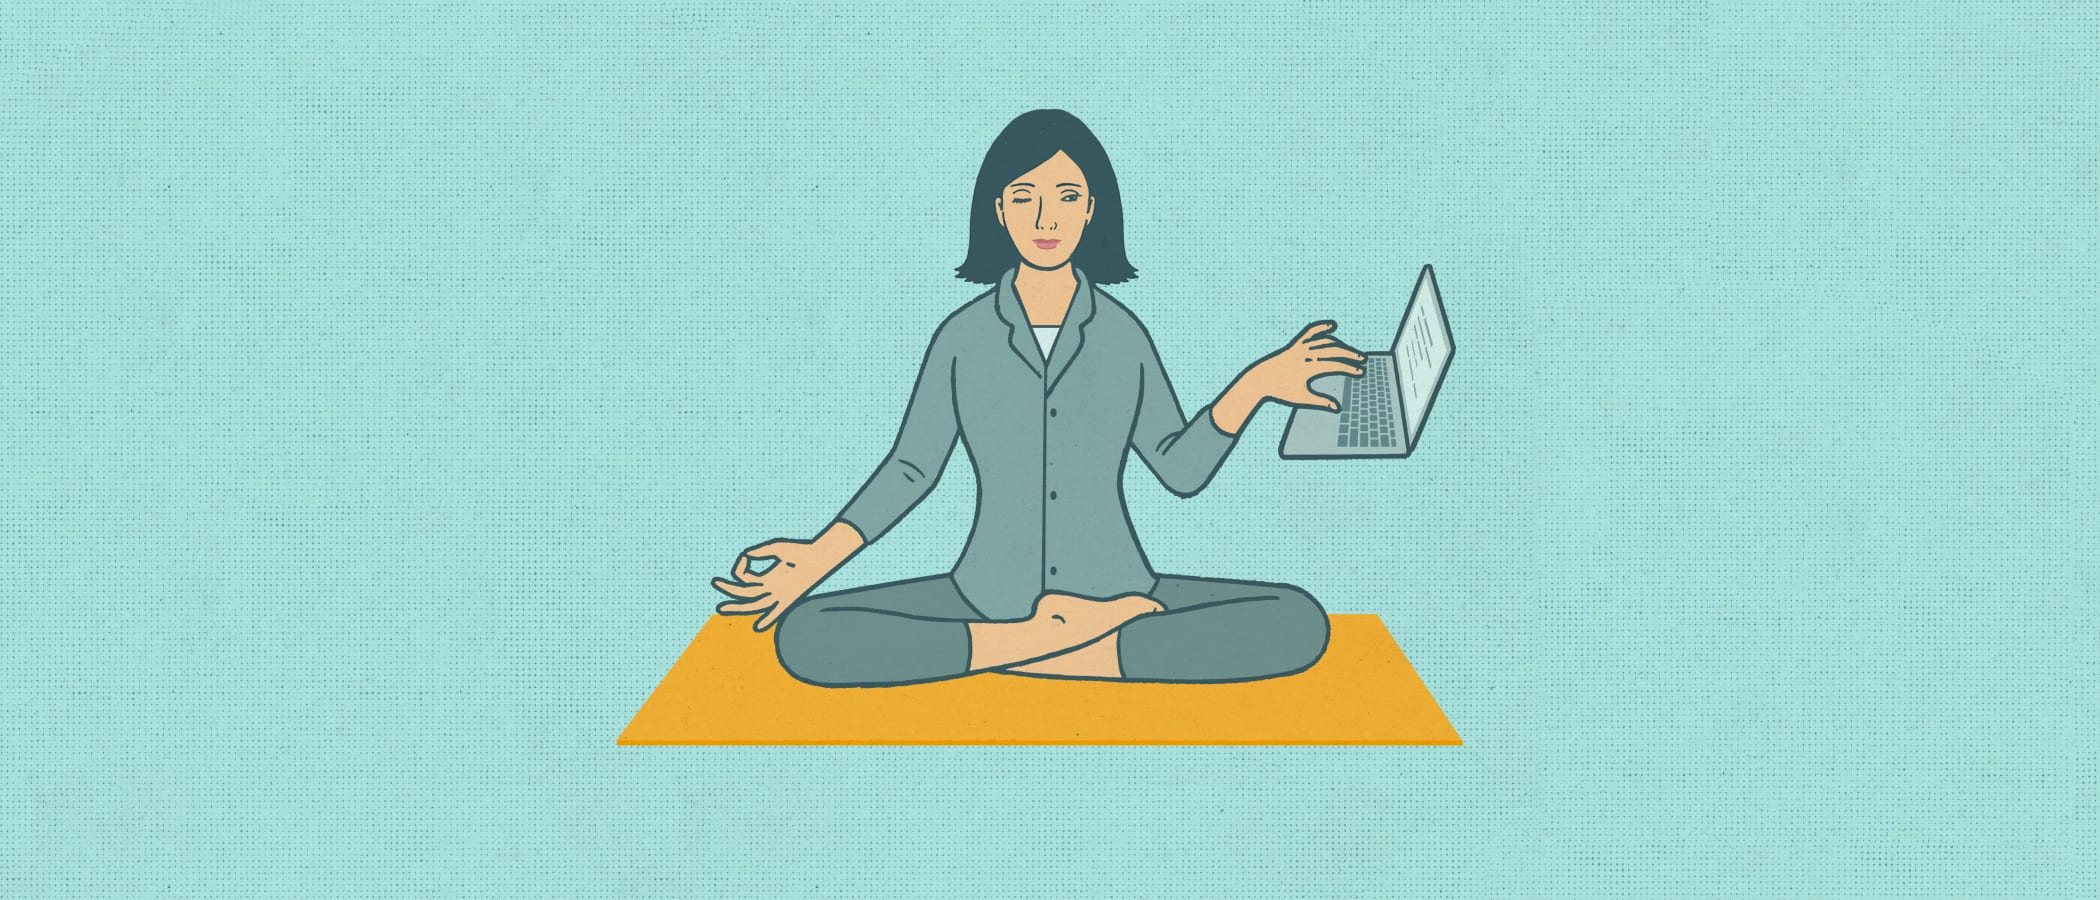 Profiles in Wellness: Four HR Leaders Taking a Holistic View